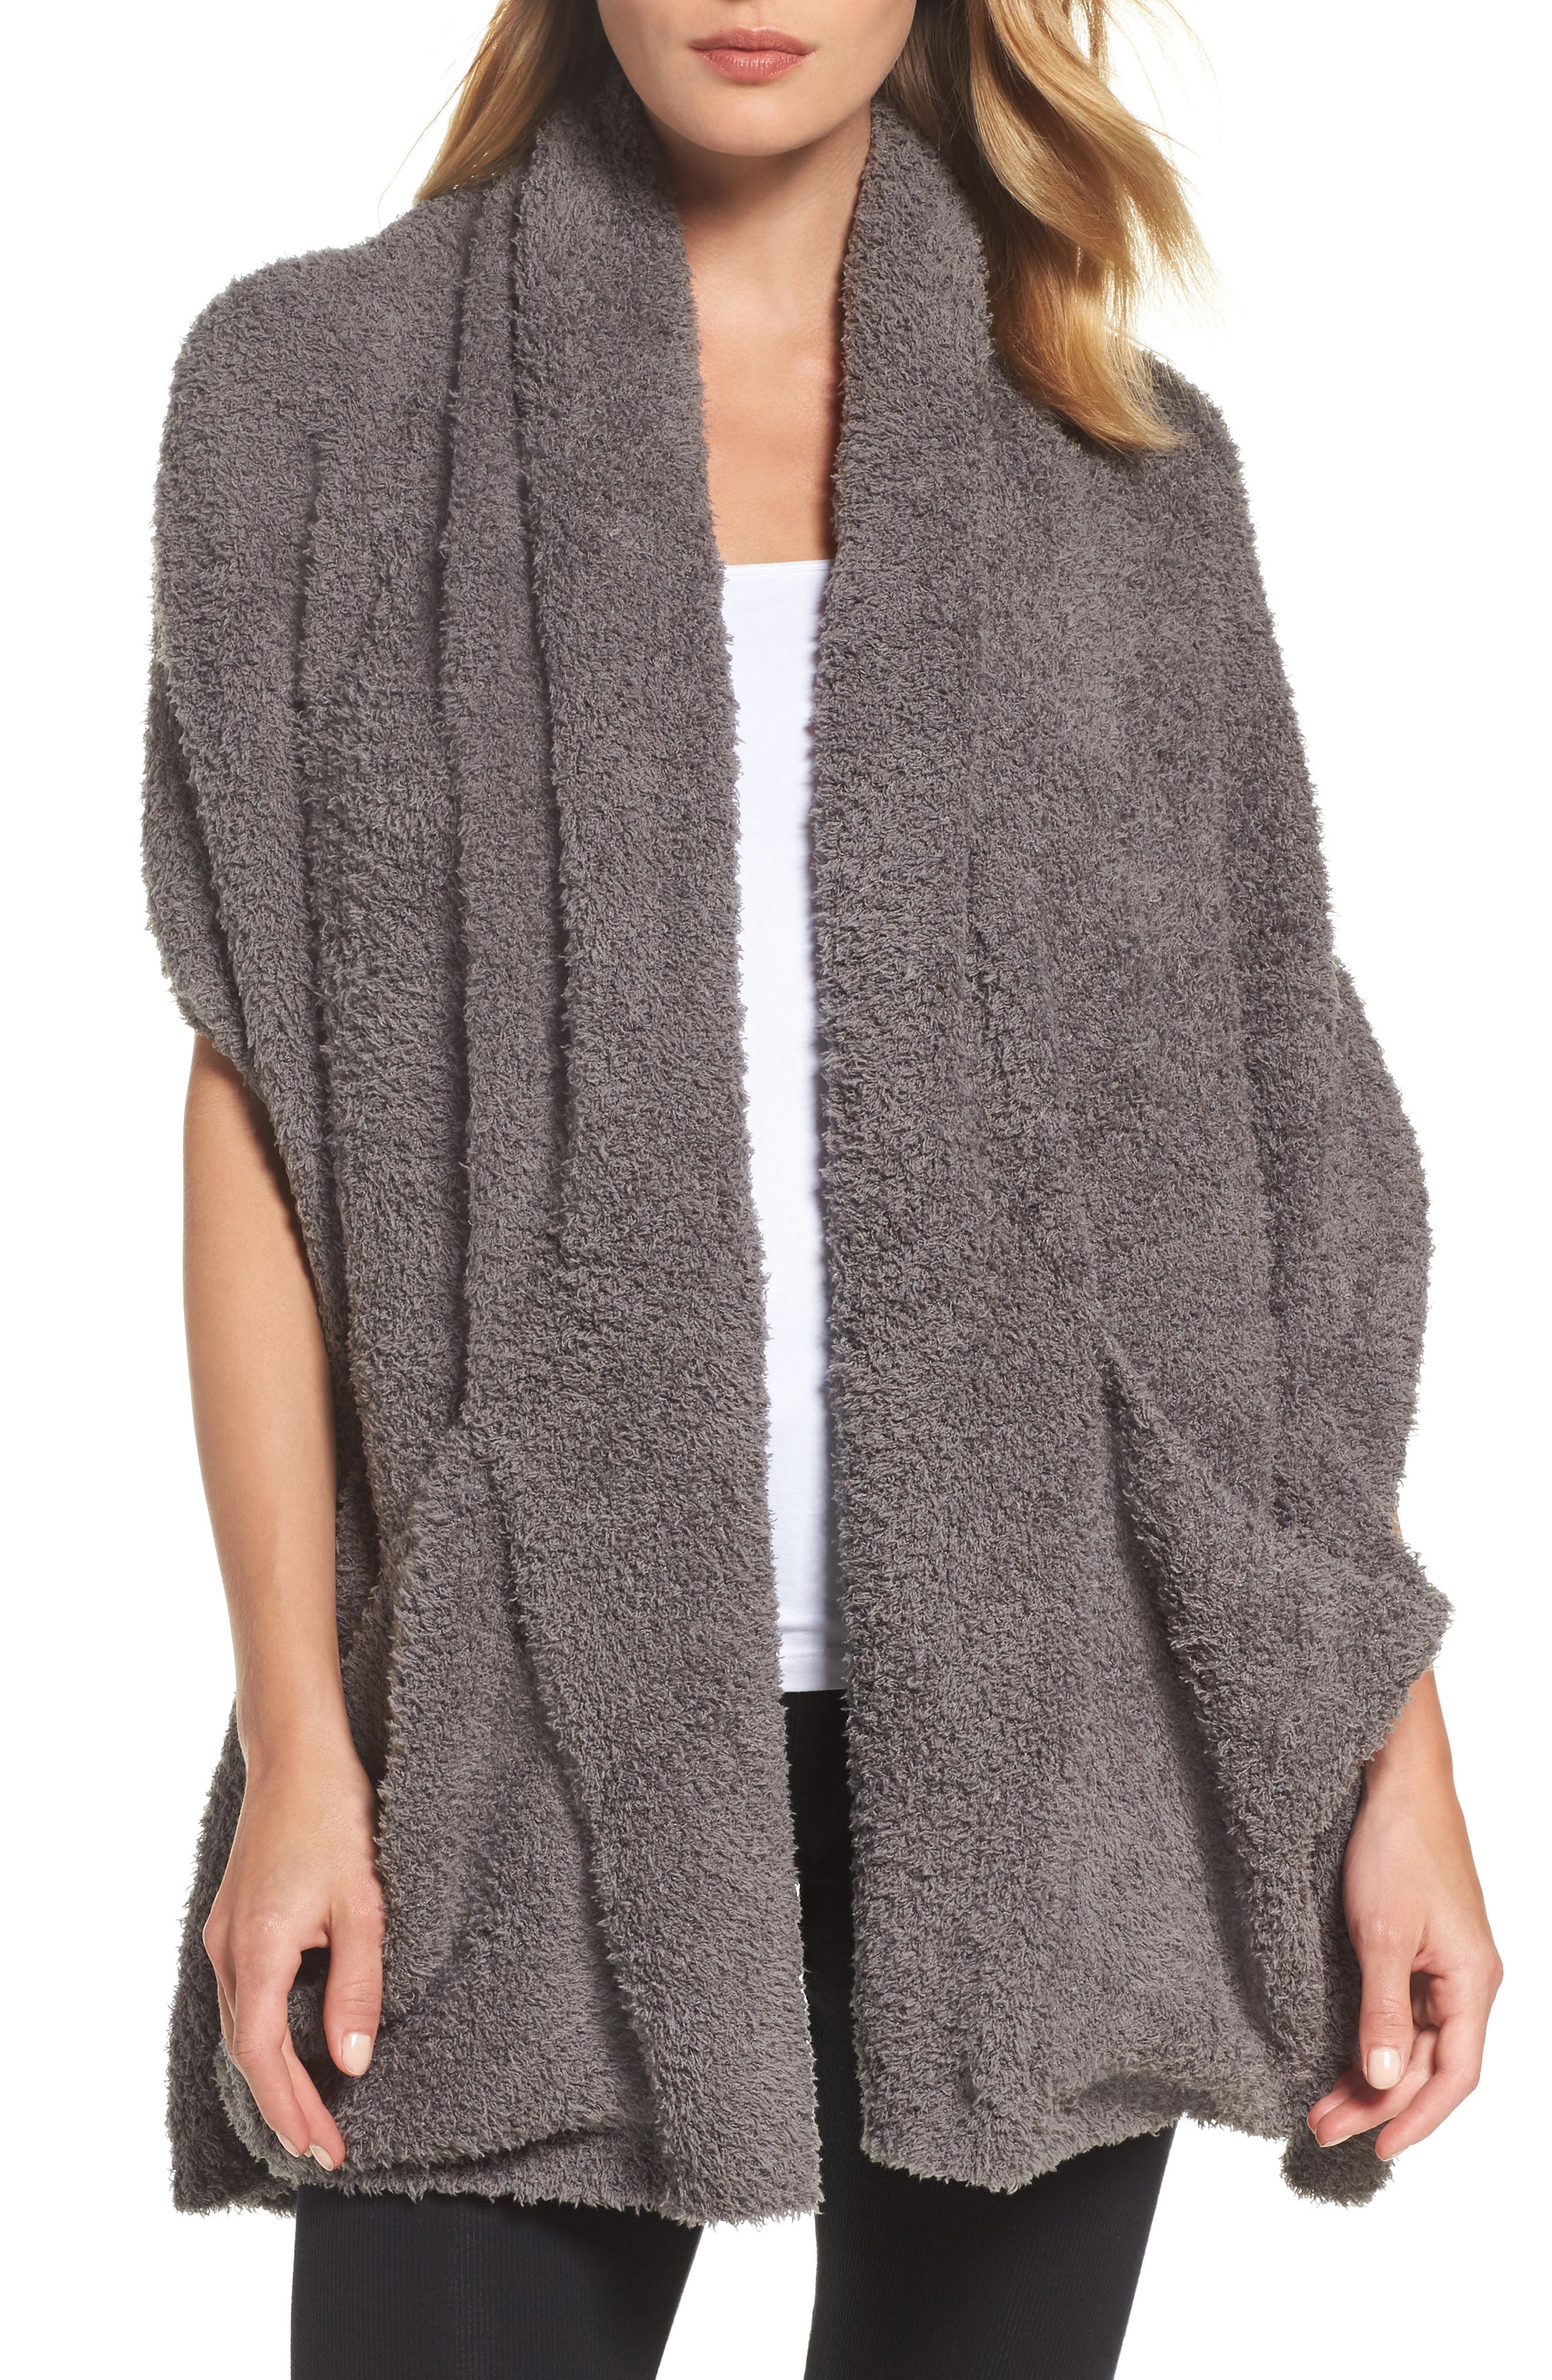 CozyChic<sup>®</sup> Travel Shawl,                         Main,                         color, Charcoal